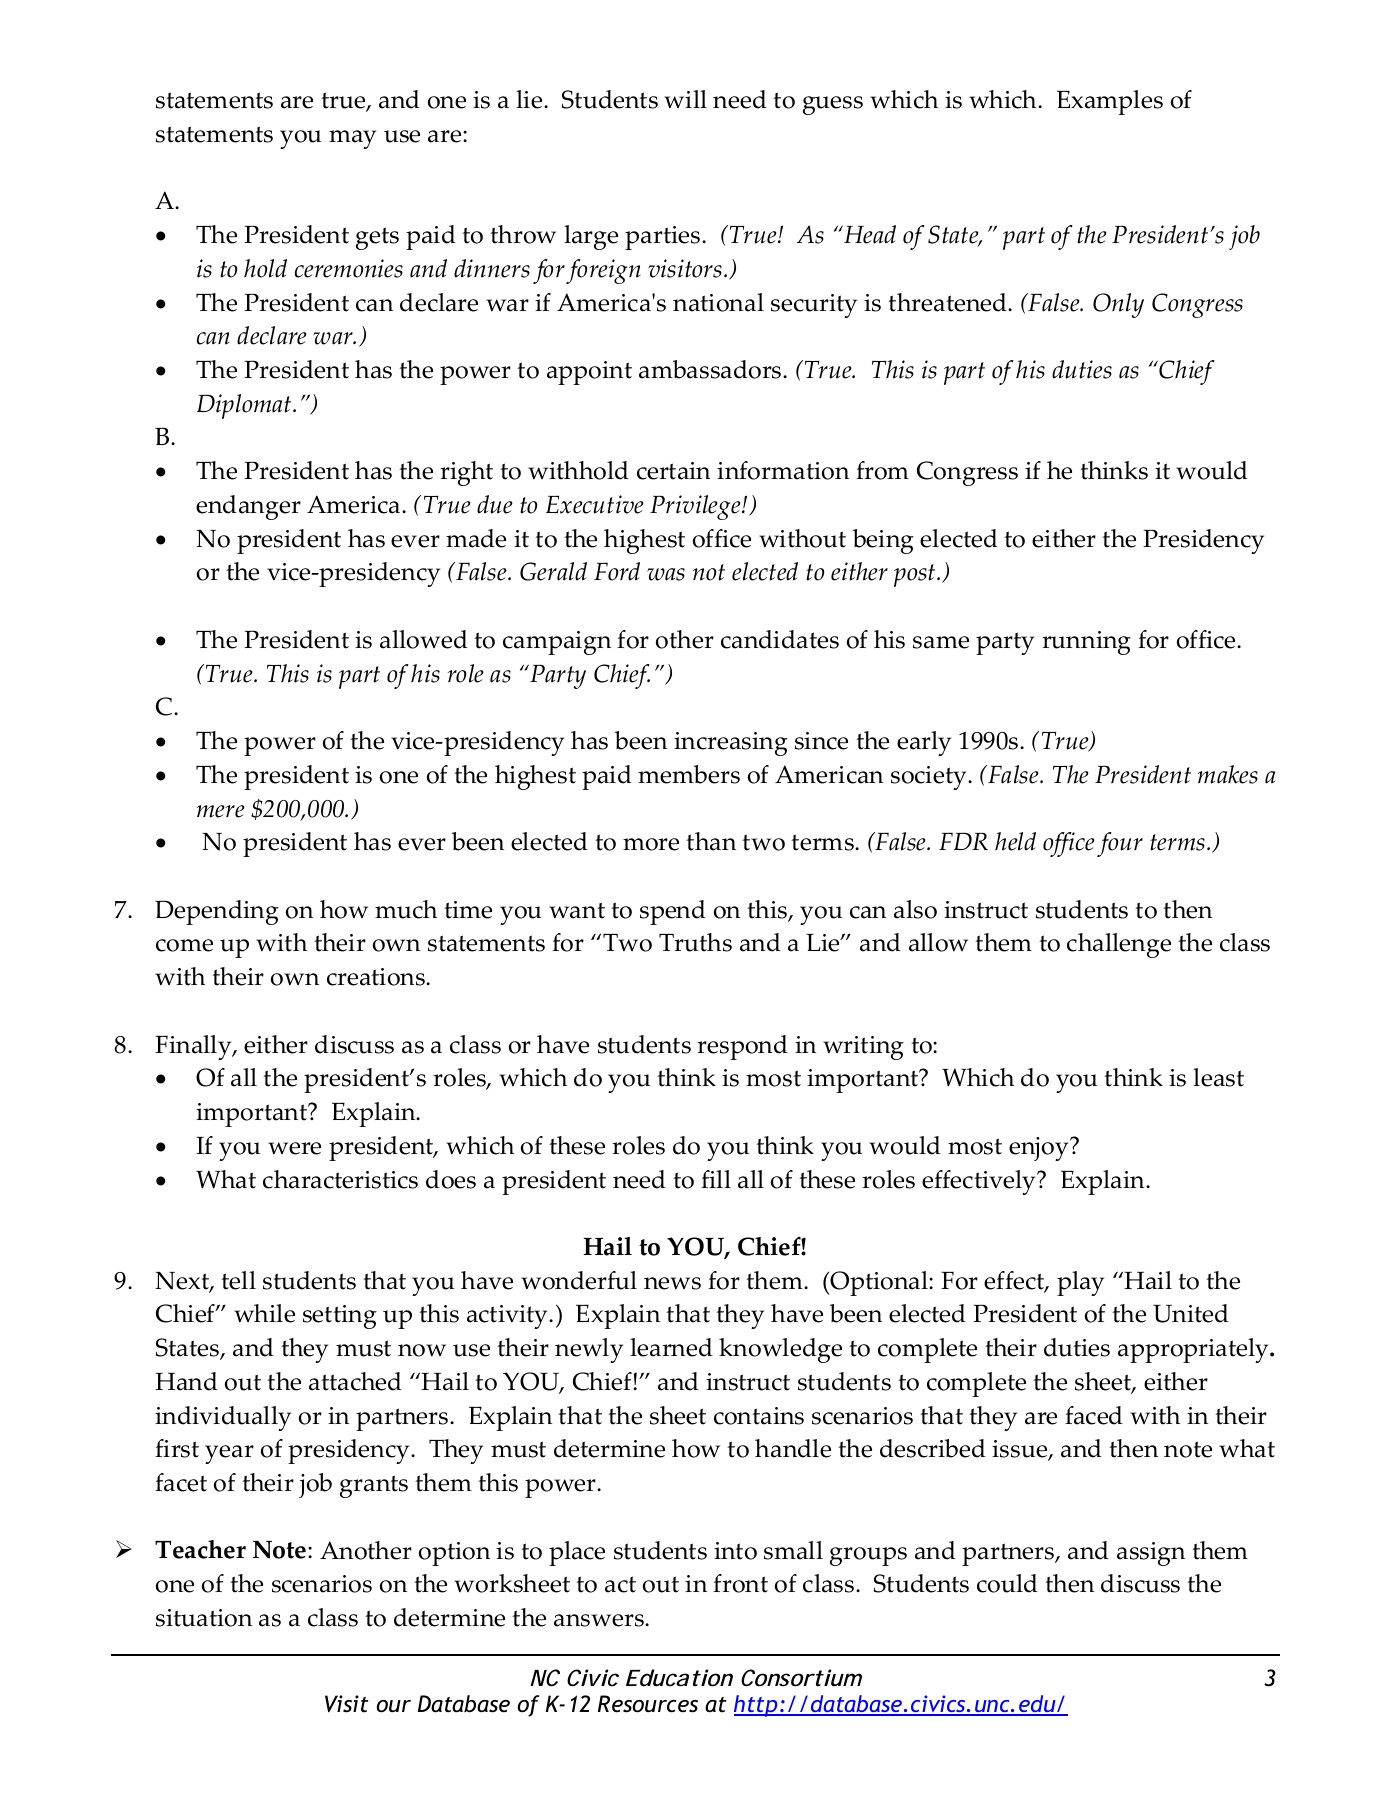 The Roles Of The President Worksheet Answers